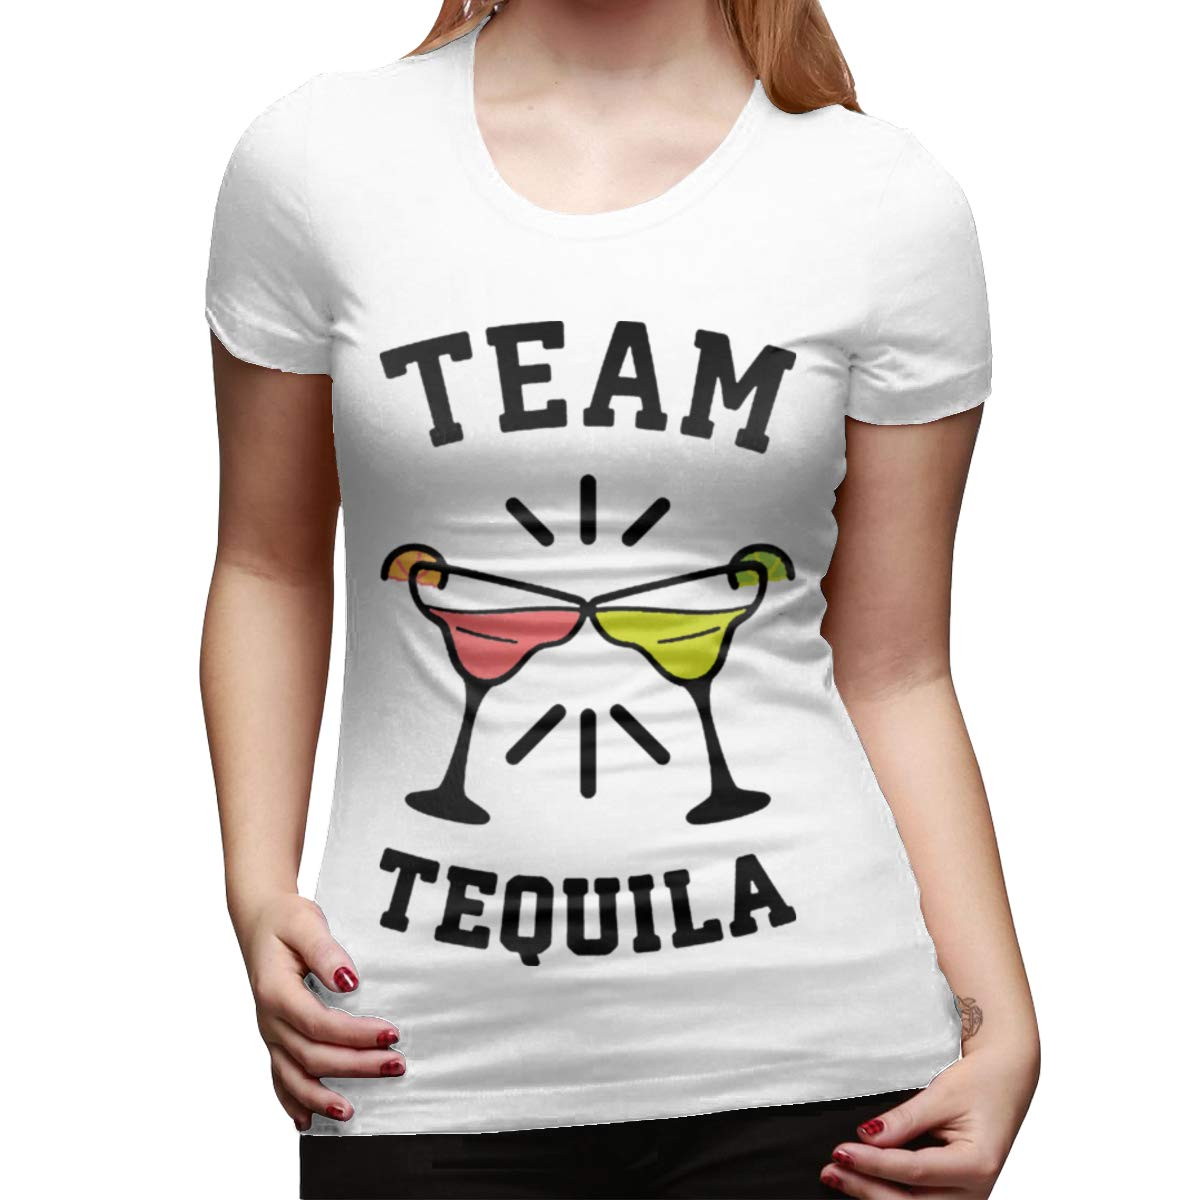 Seuriamin Team Tequila Relaxed Outdoor Round Neck Short Sleeve Shirt Tops